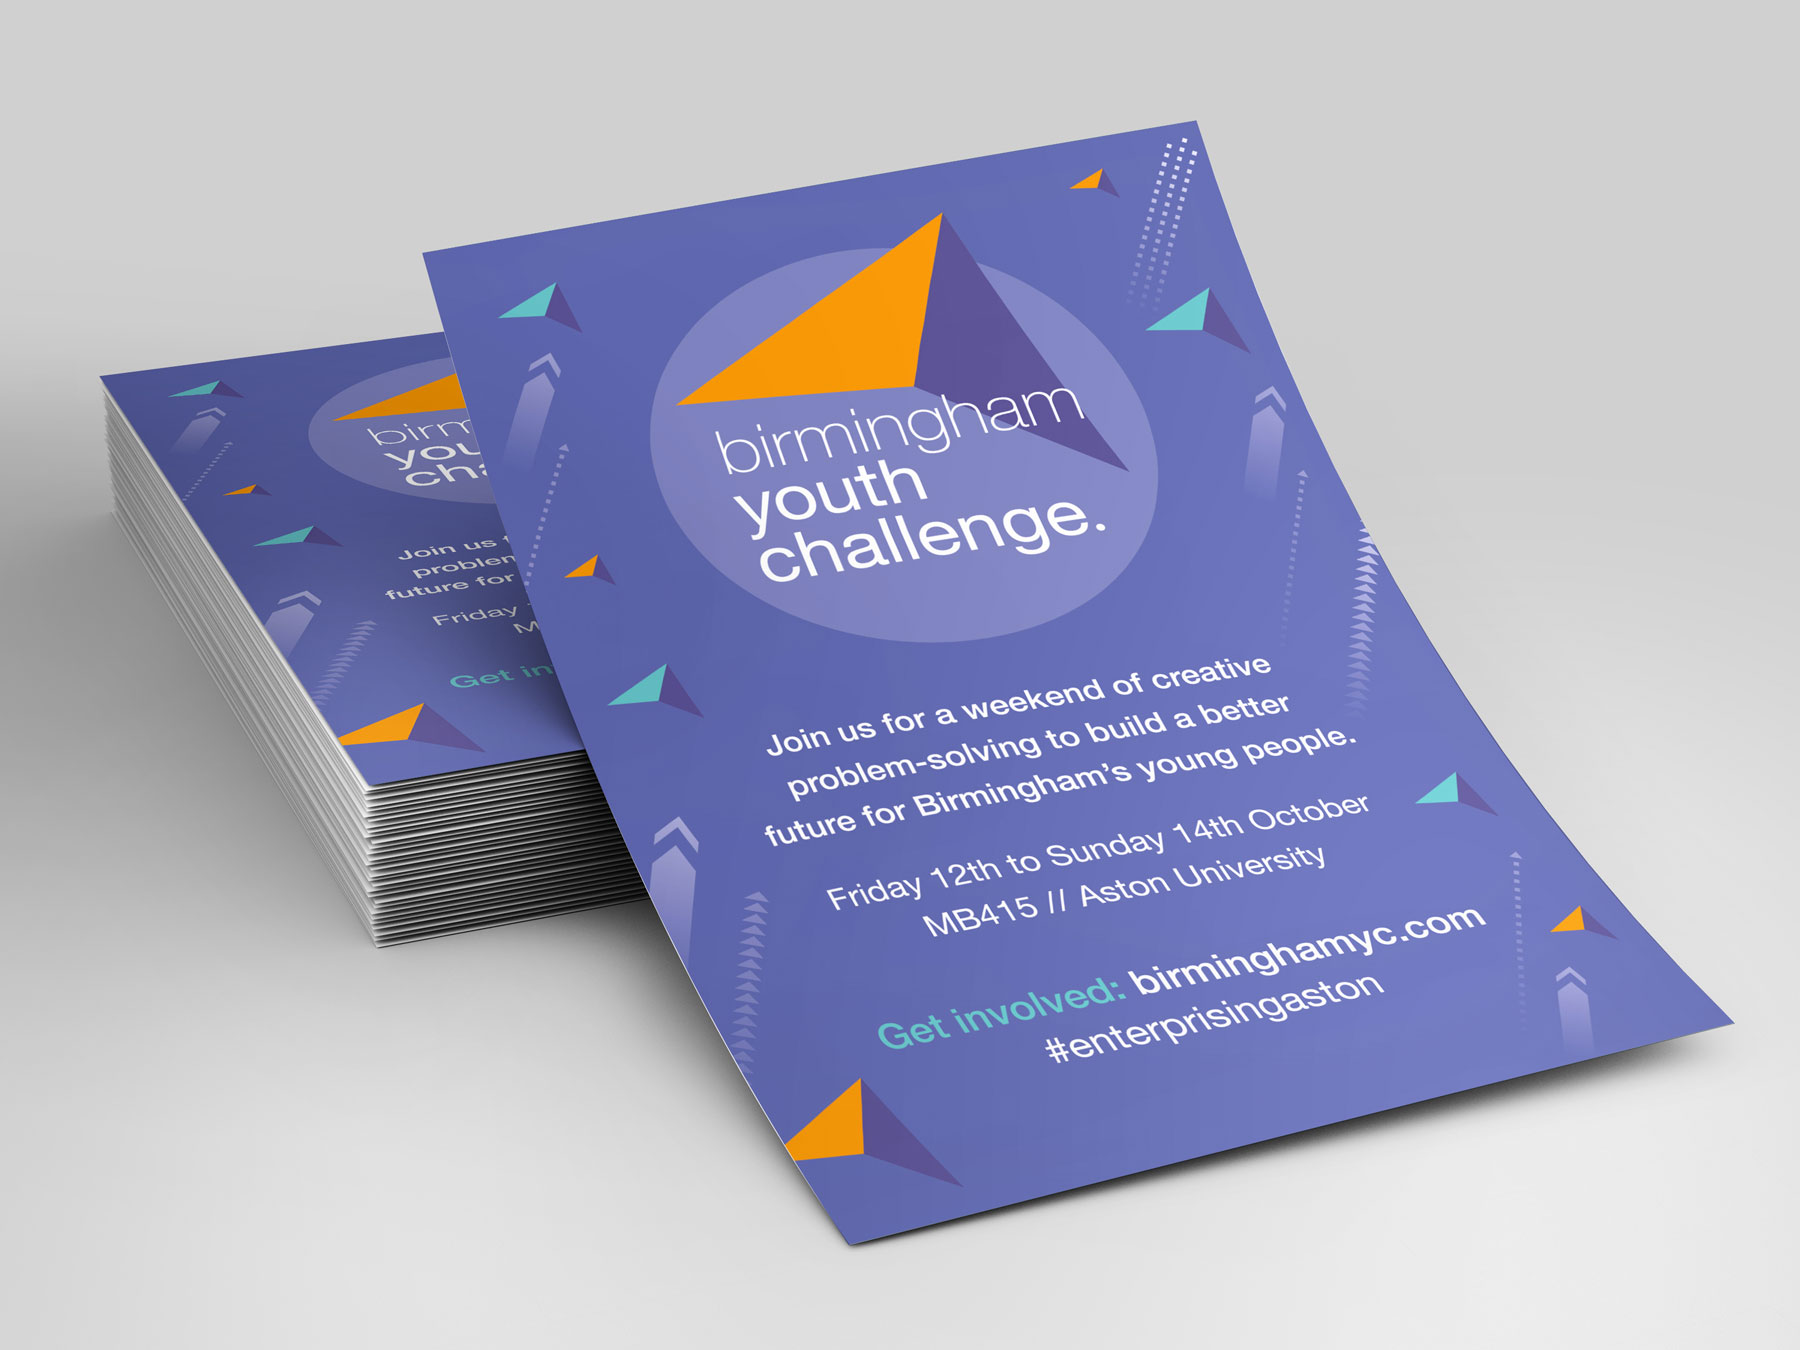 Birmingham Youth Challenge flyers